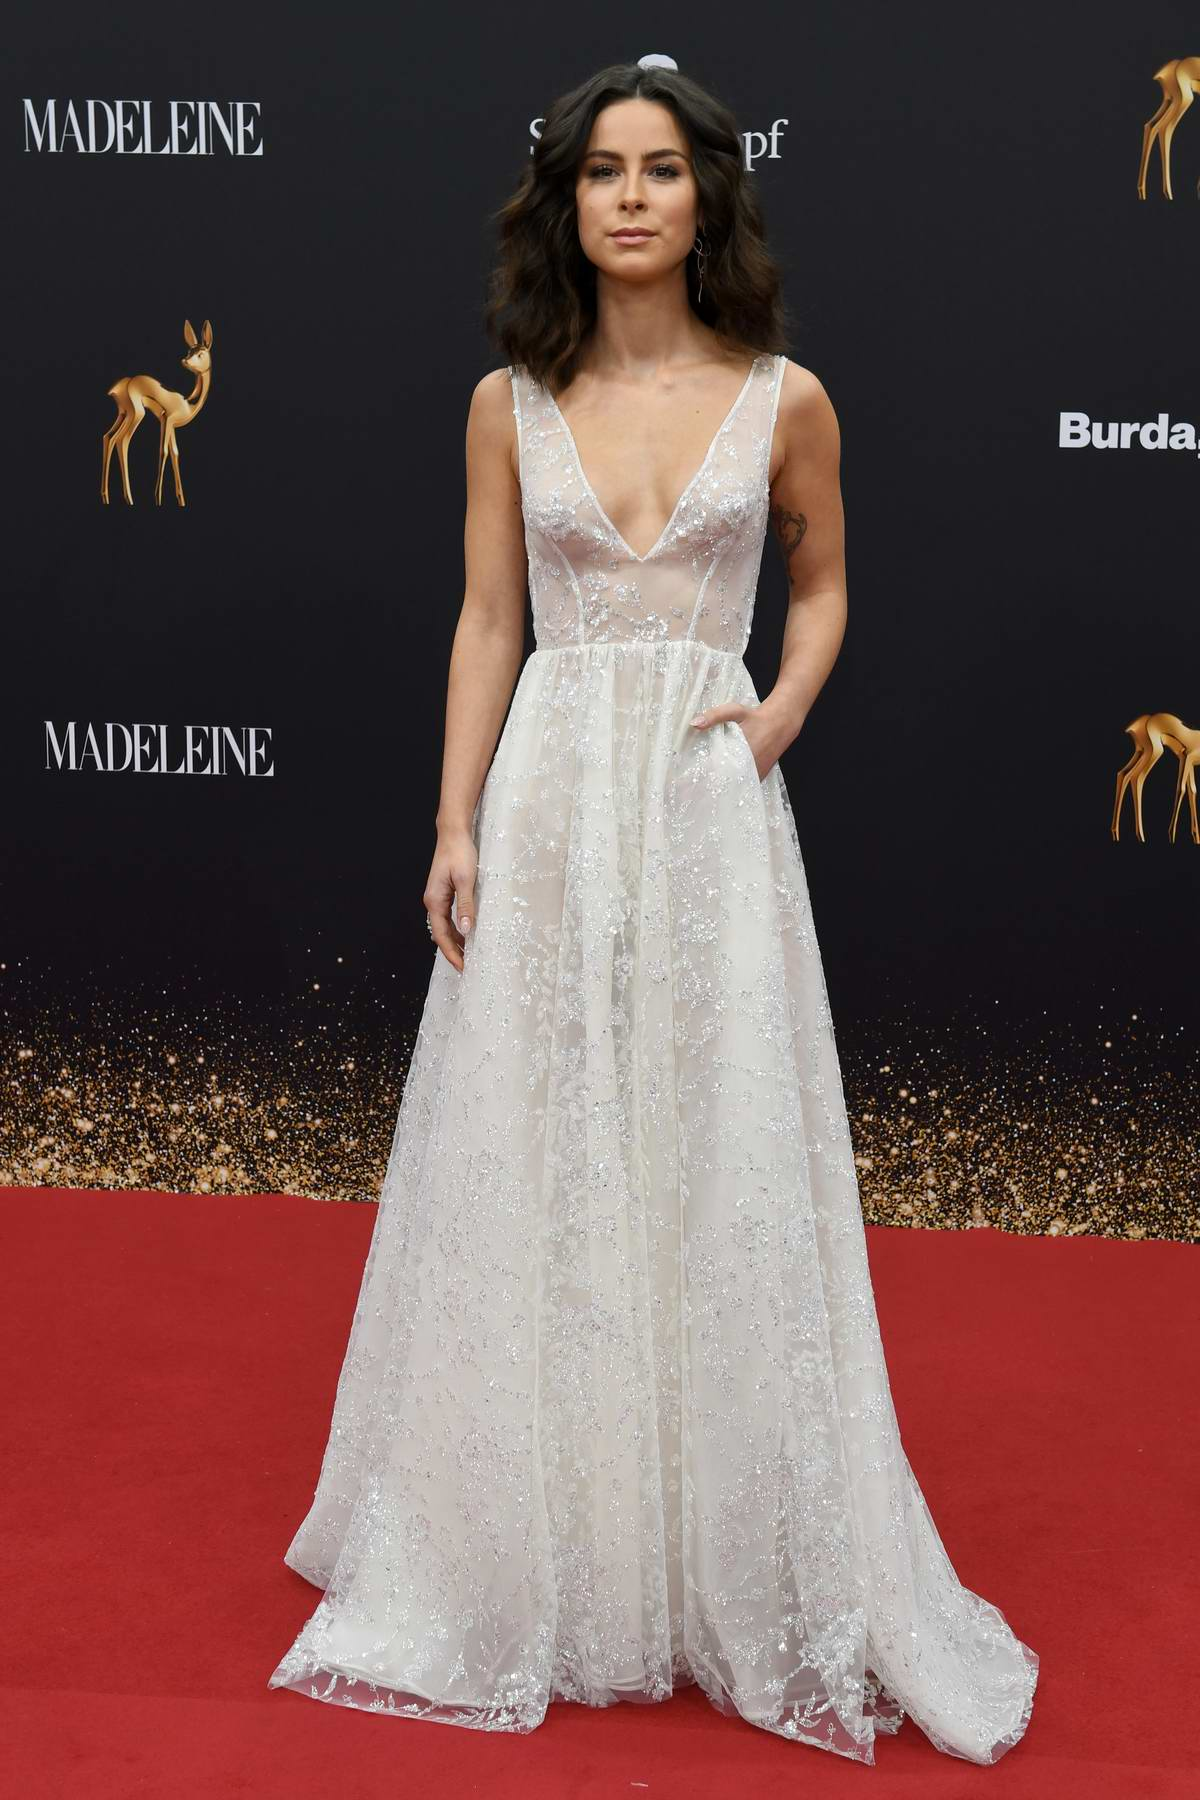 Lena Meyer-Landrut attends the 71st Bambi Awards at the Festspielhaus Baden-Baden in Baden-Baden, Germany